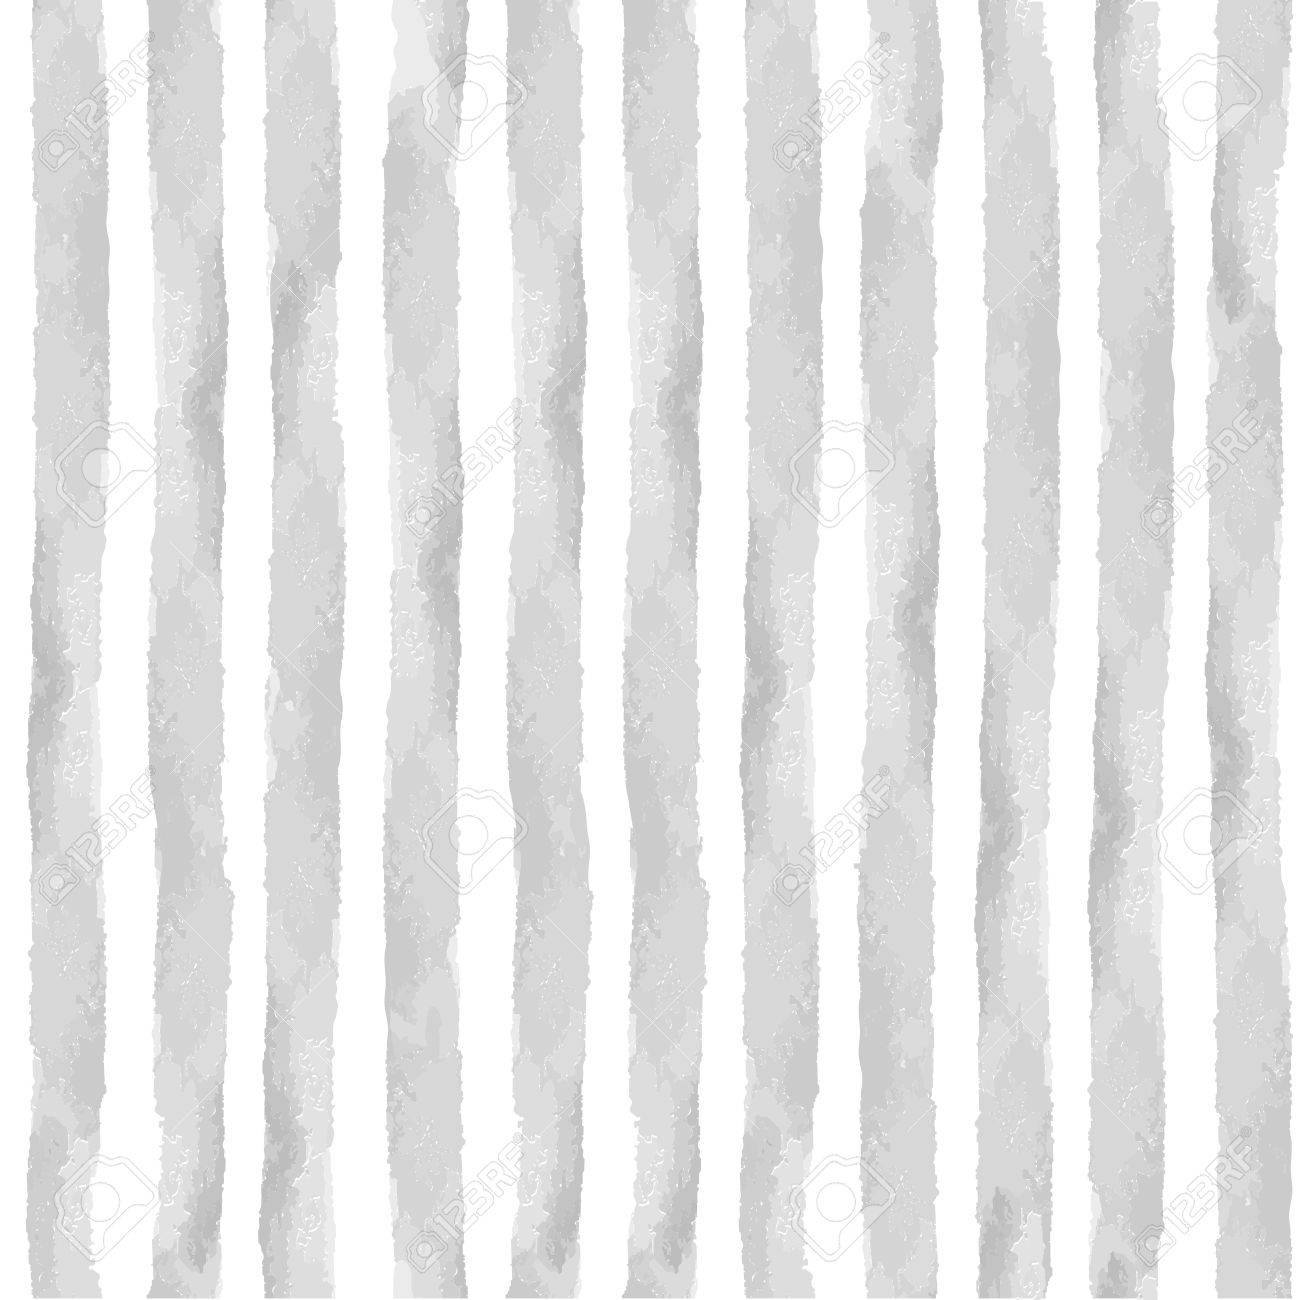 Beautiful Wallpaper Grey Watercolor - 44147013-watercolor-seamless-pattern-with-grey-vertical-strips-cute-vintage-hand-drawing-painting-background-  Photograph_7862100.jpg